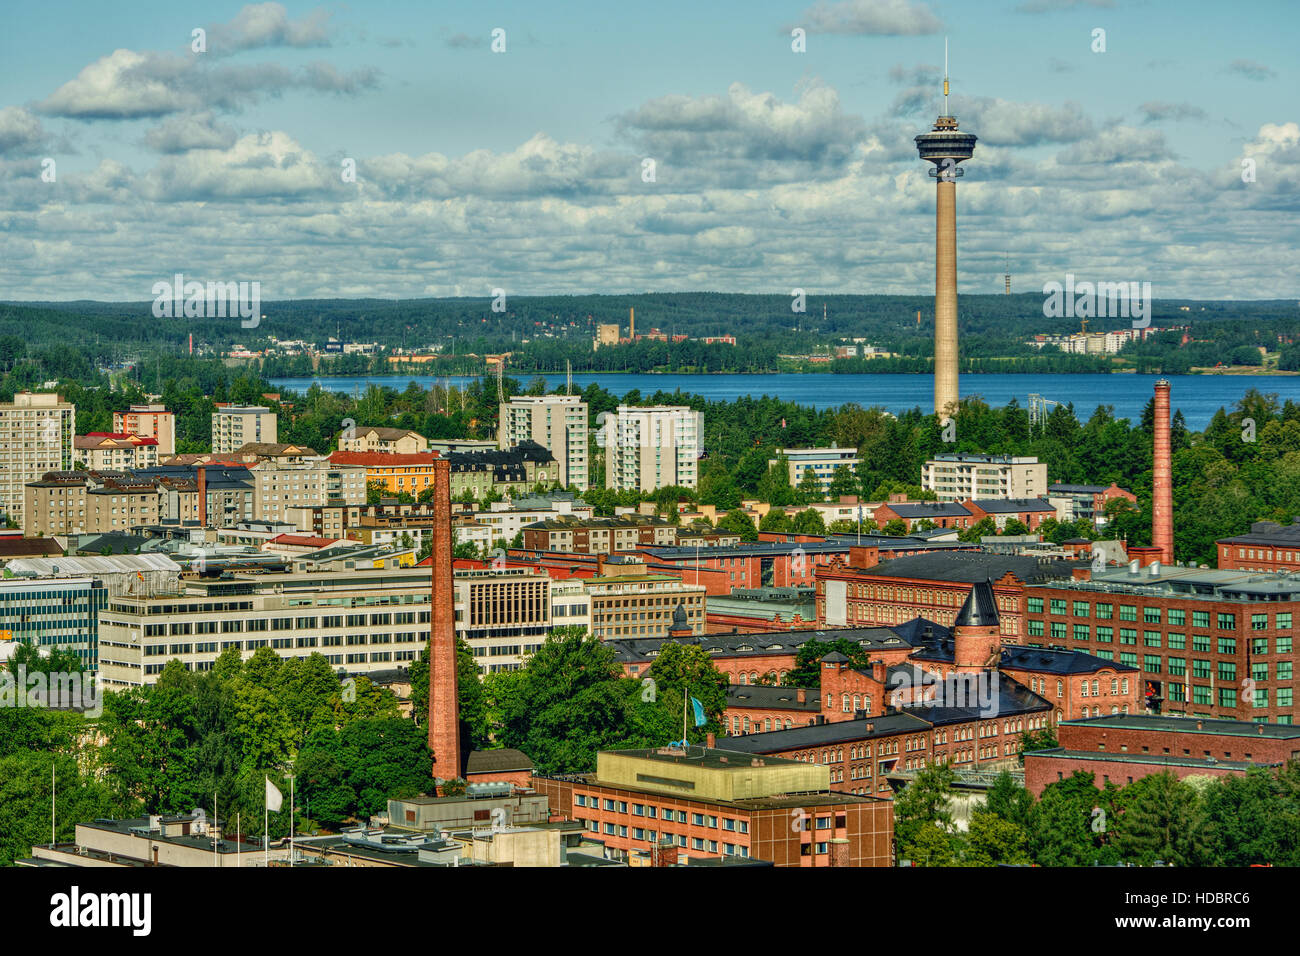 July 2016, urban capture of Tampere (Finland), HDR-technique - Stock Image